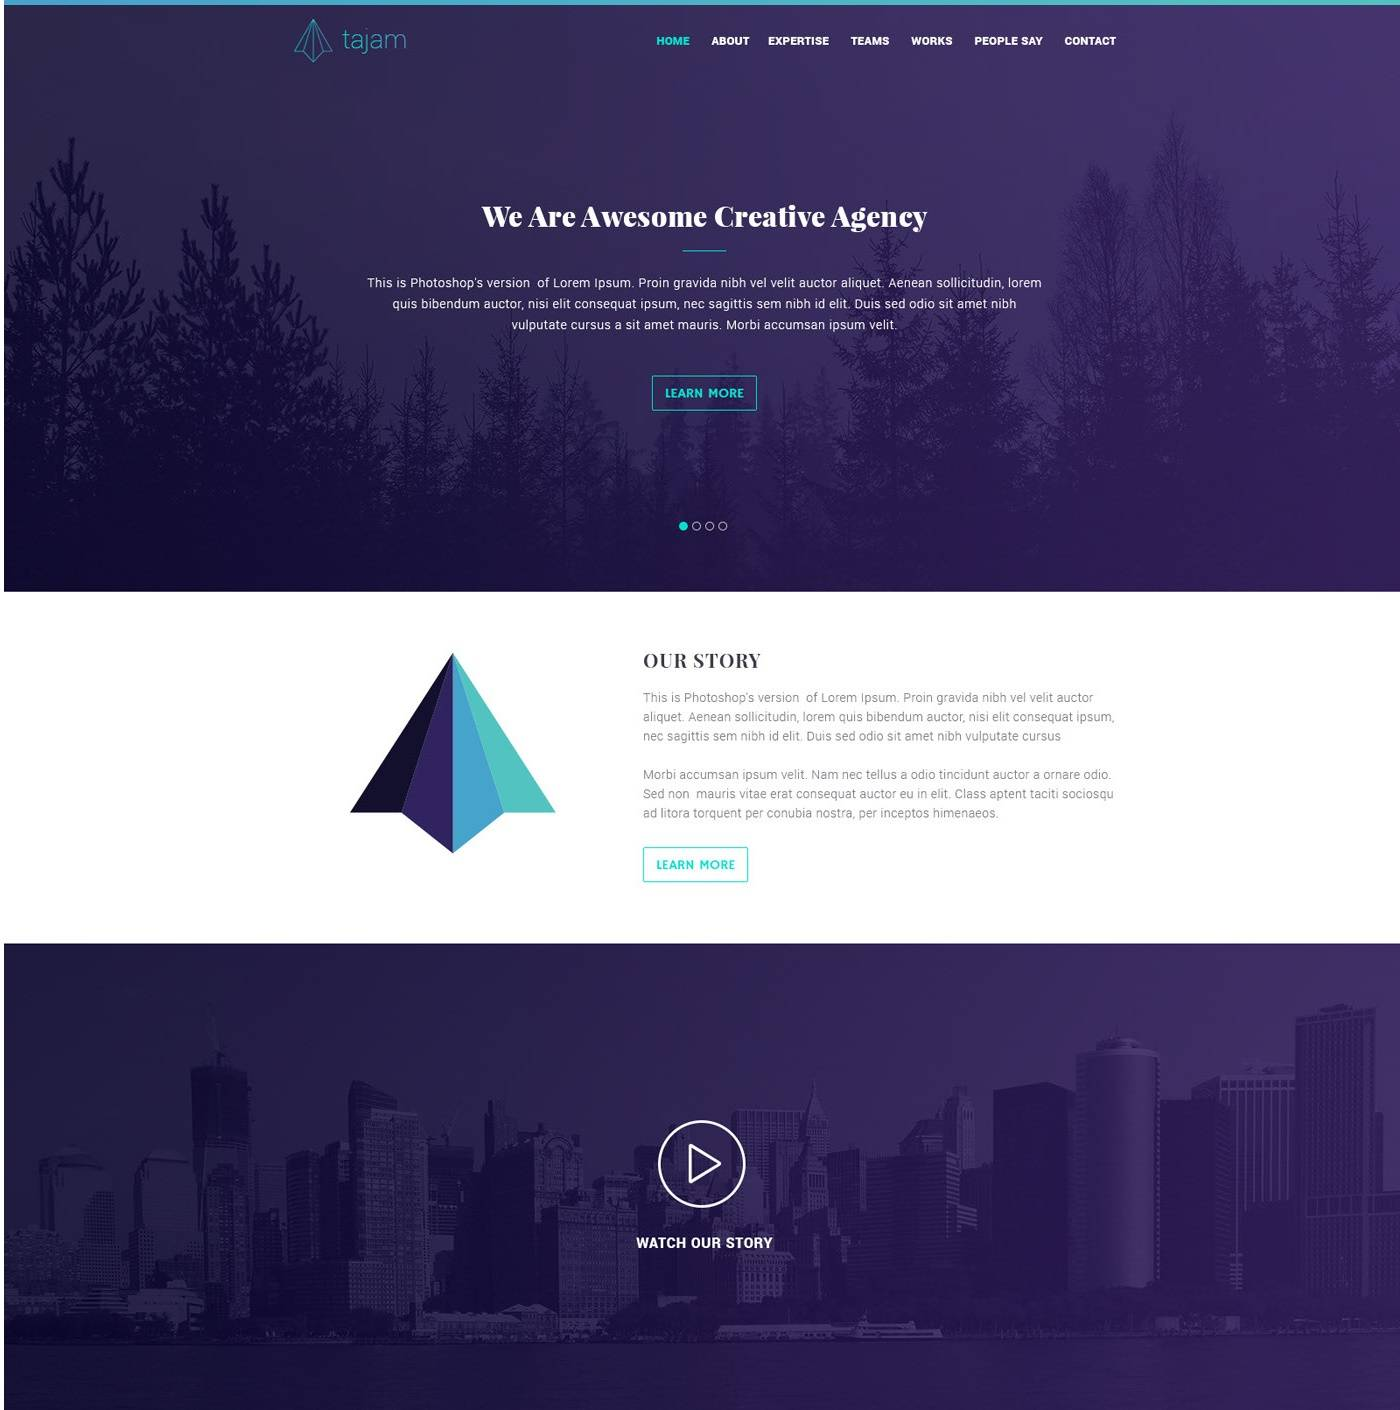 Tajam Agency- free psd templates download for website